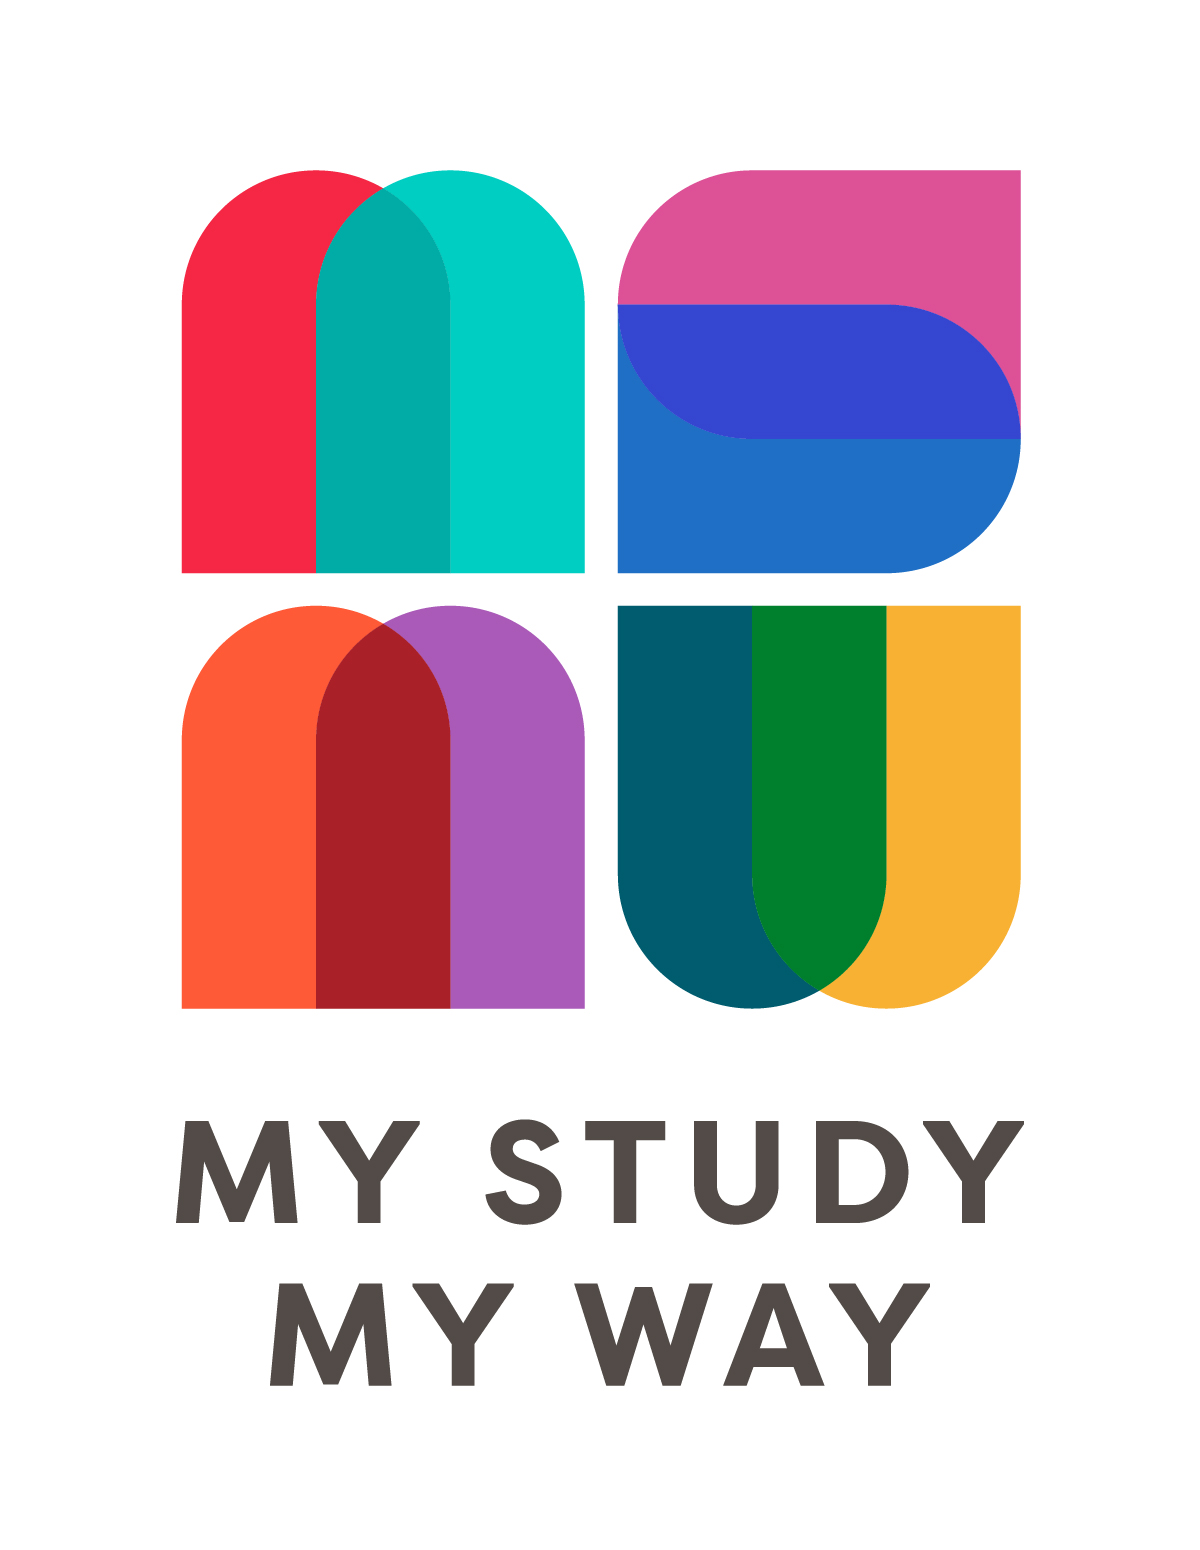 My Study My Way logo